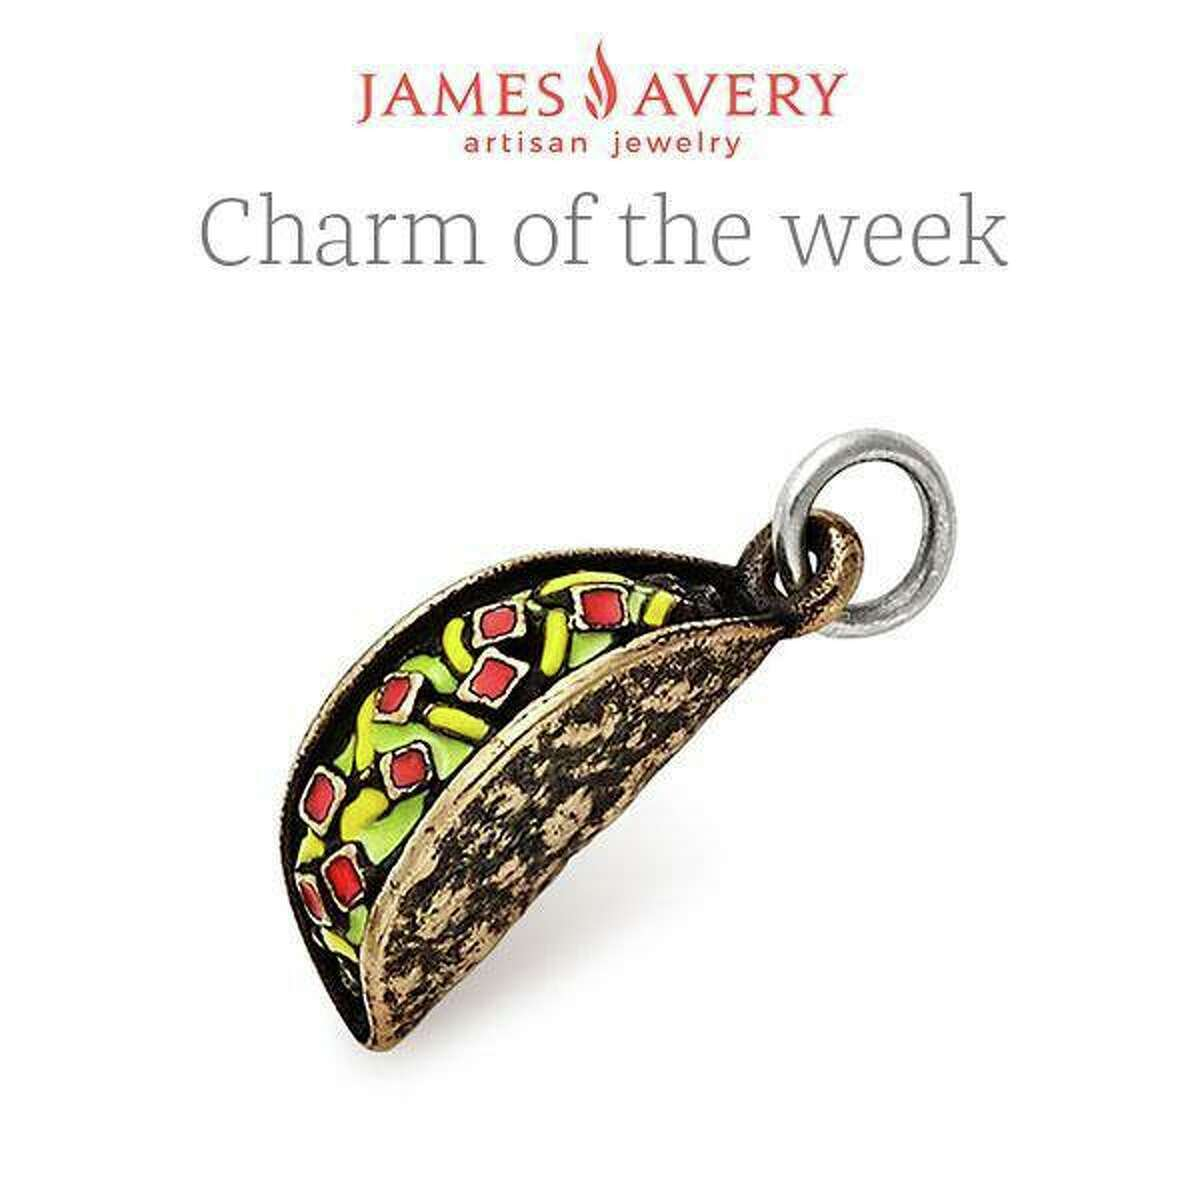 James Avery Artisan Jewelry promoted the new product, a bronze tortilla shell stuffed with enameled veggies, as the